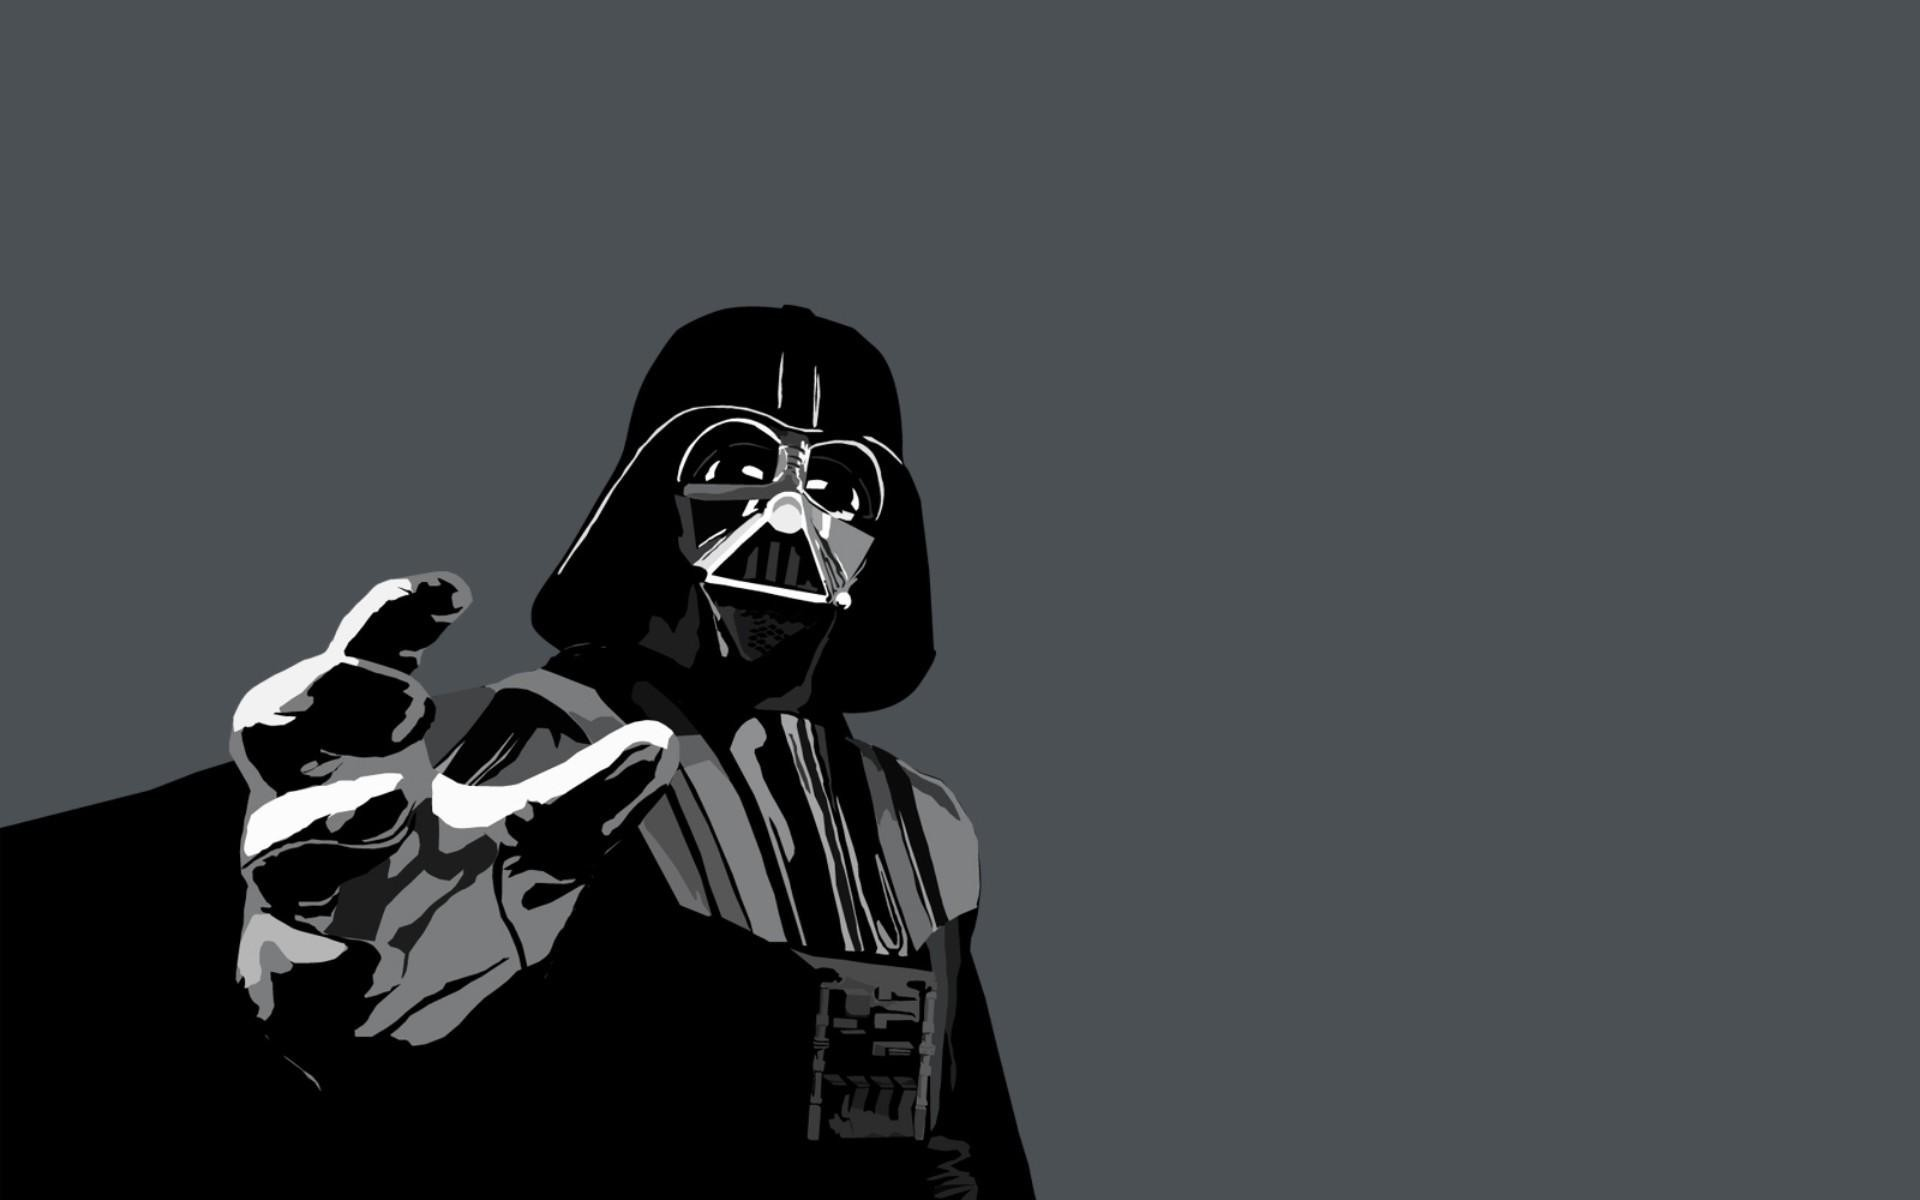 Darth vader wallpapers pictures images for Darth vader black and white